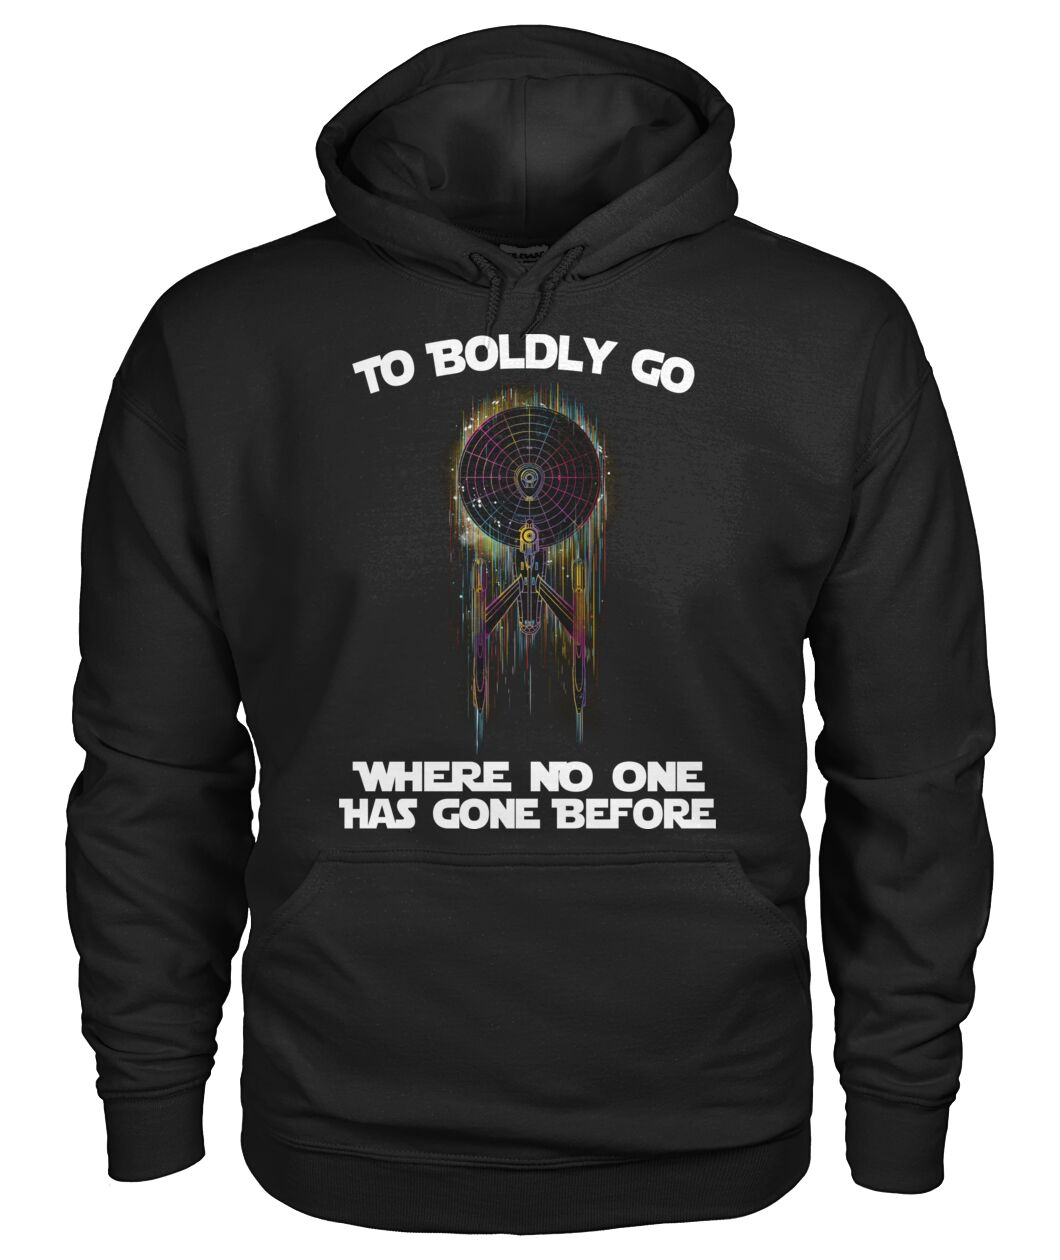 star trek to boldly go where no one has gone before hoodie